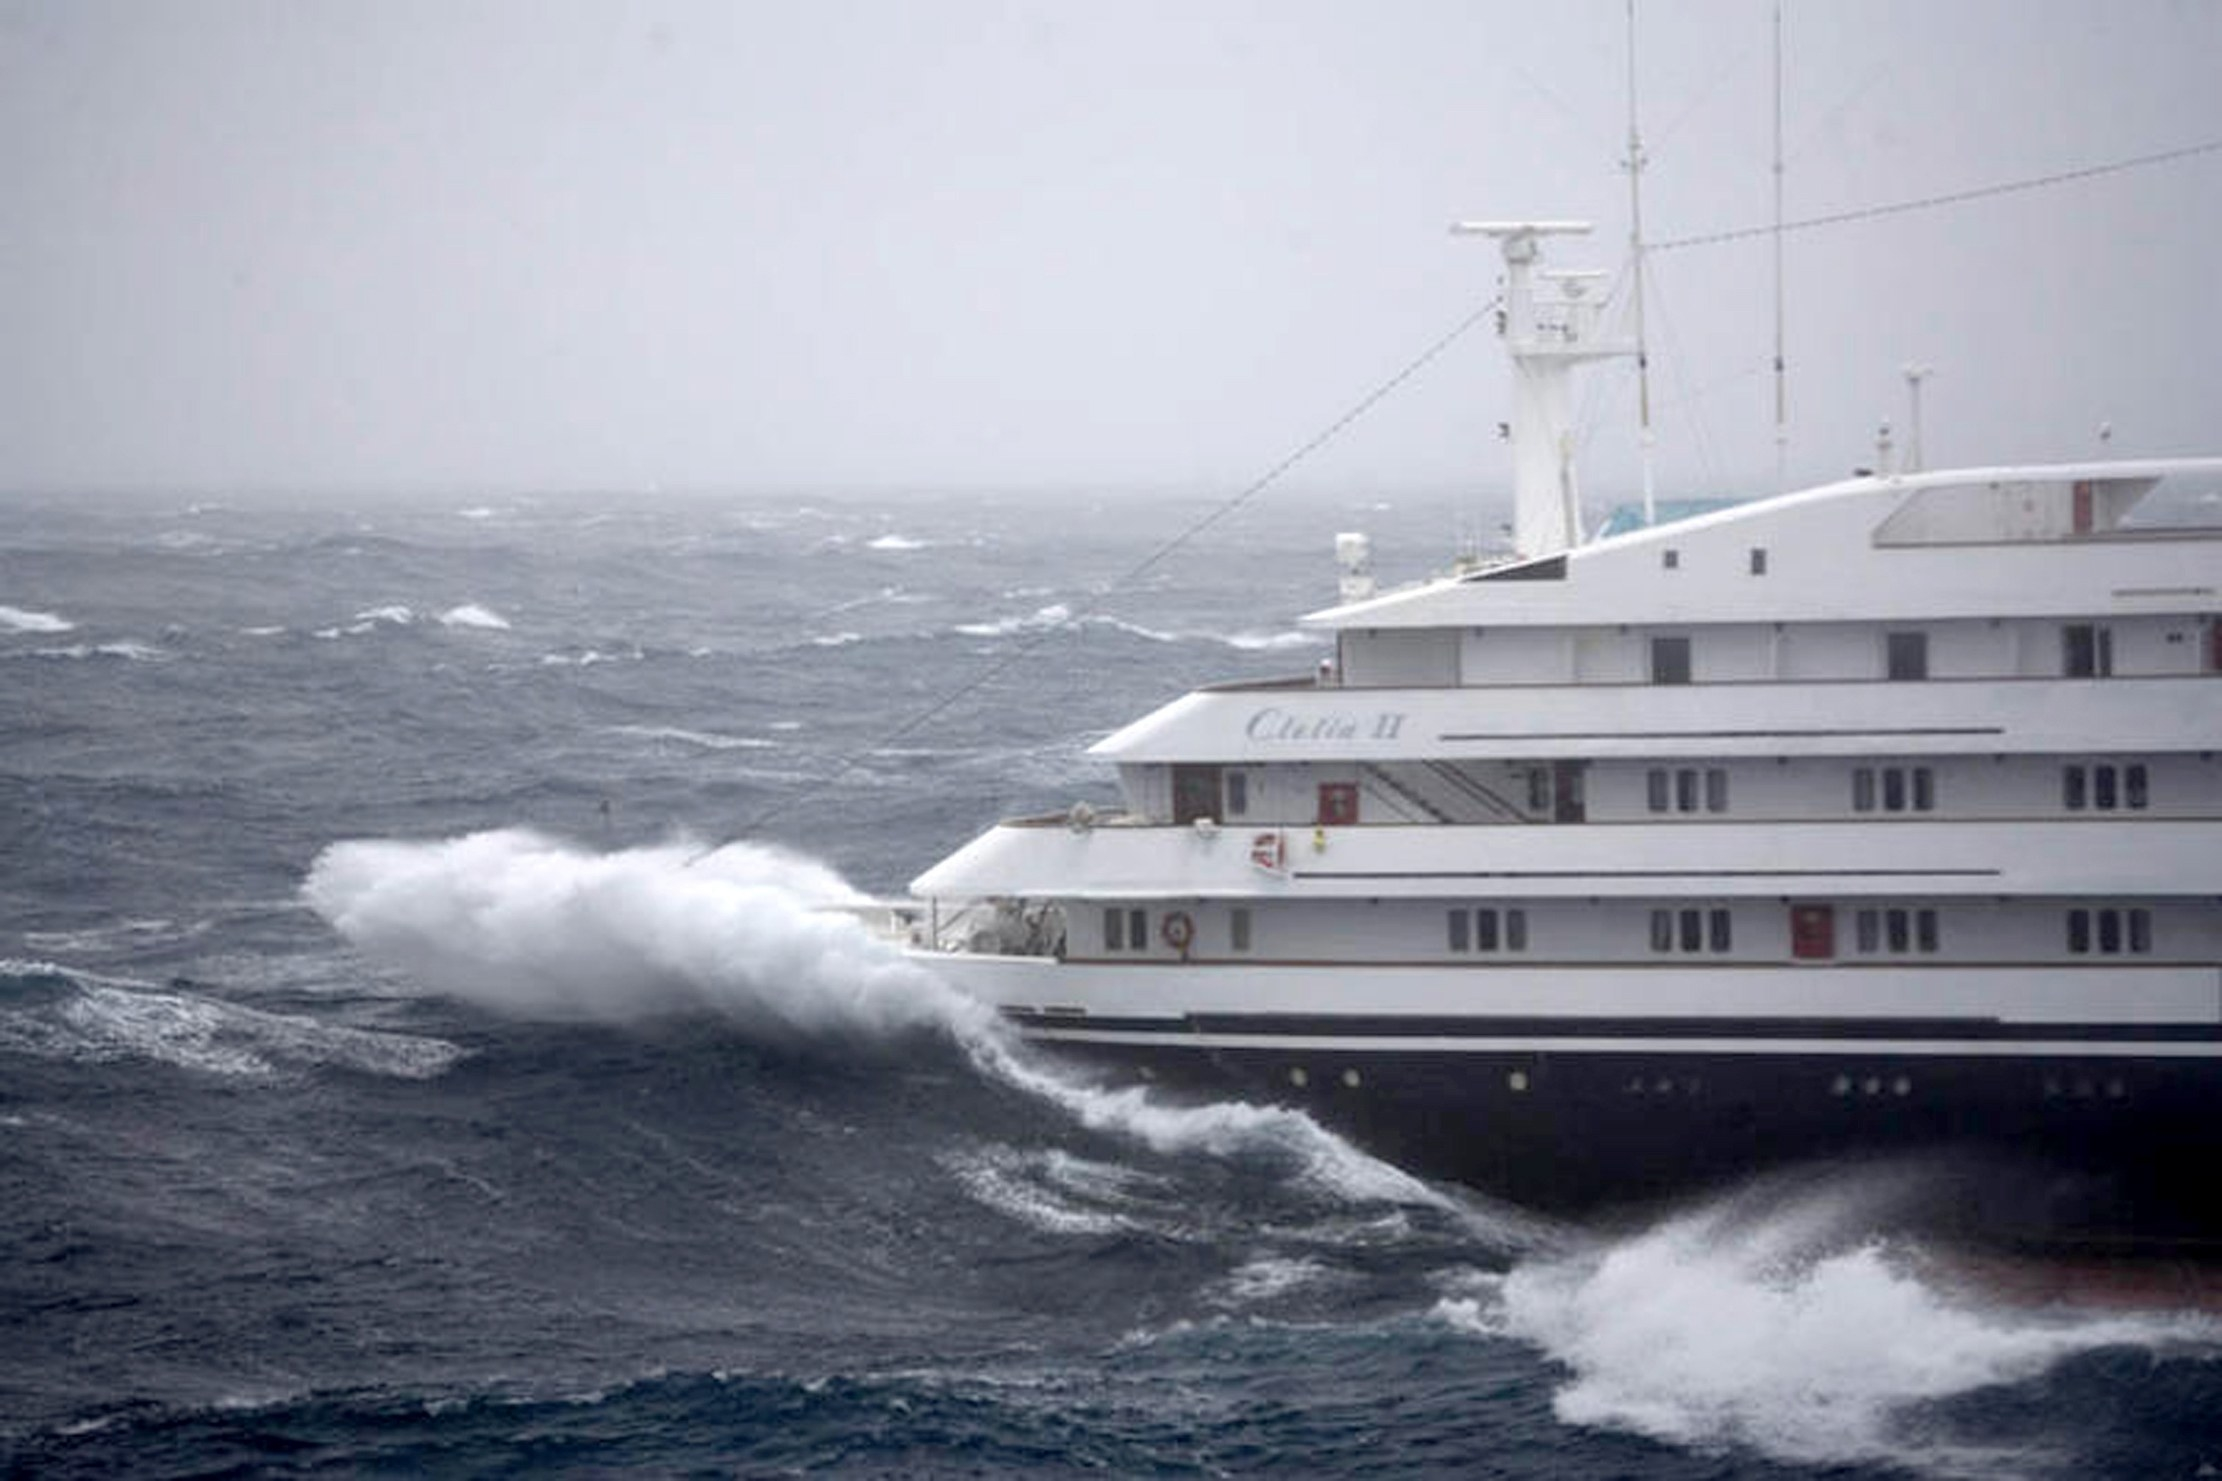 Cruising with Hurricanes and Rough Seas